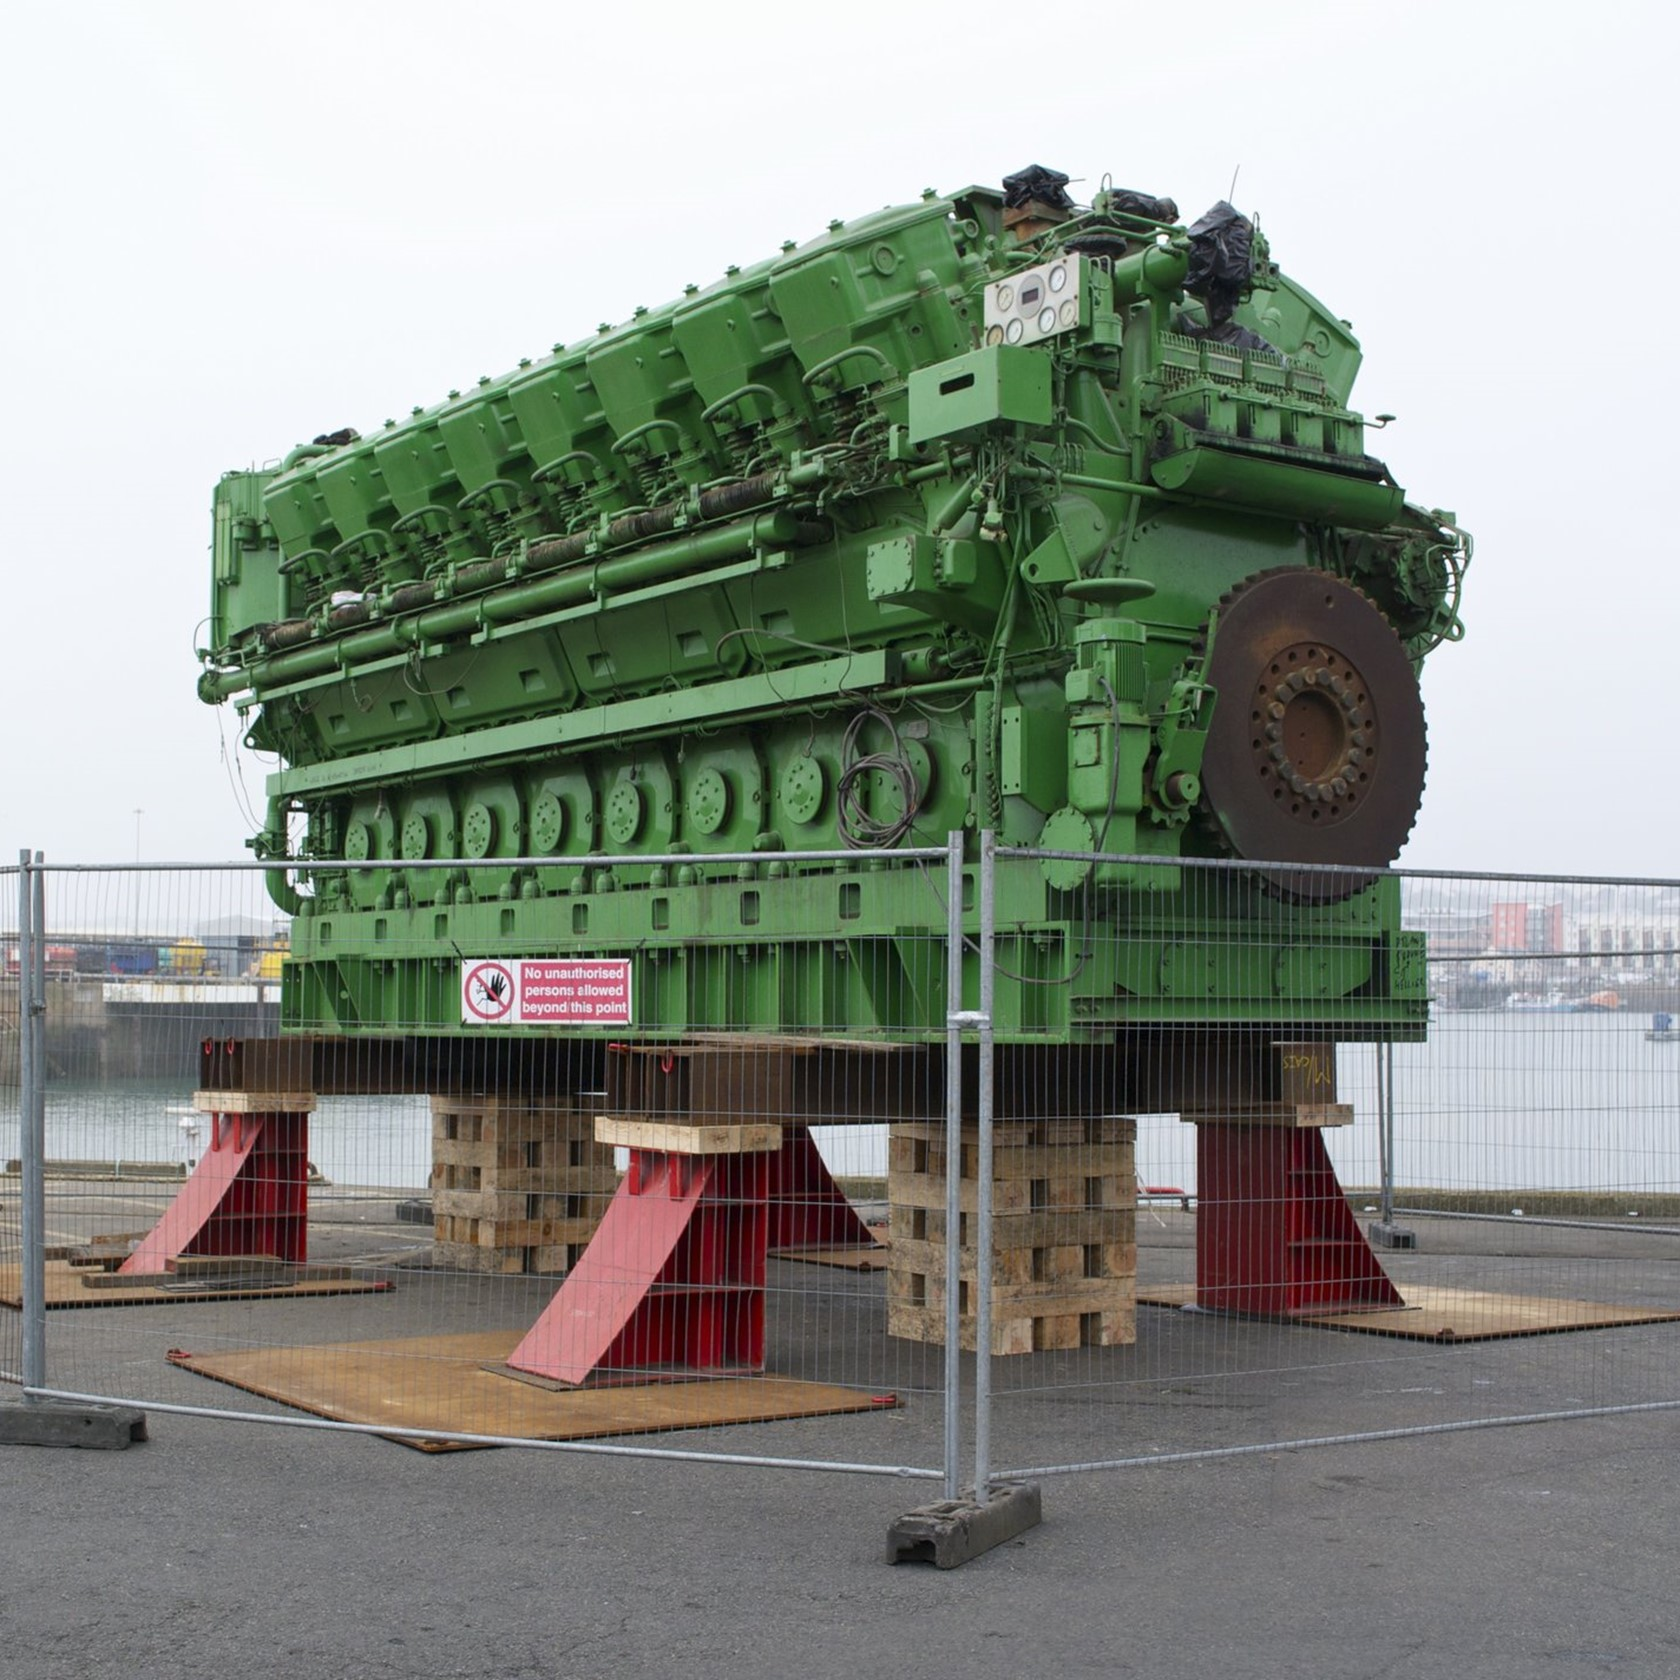 One of the two Sulzer Diesel Generators destined for La Collete sits on the docks in St Helier.